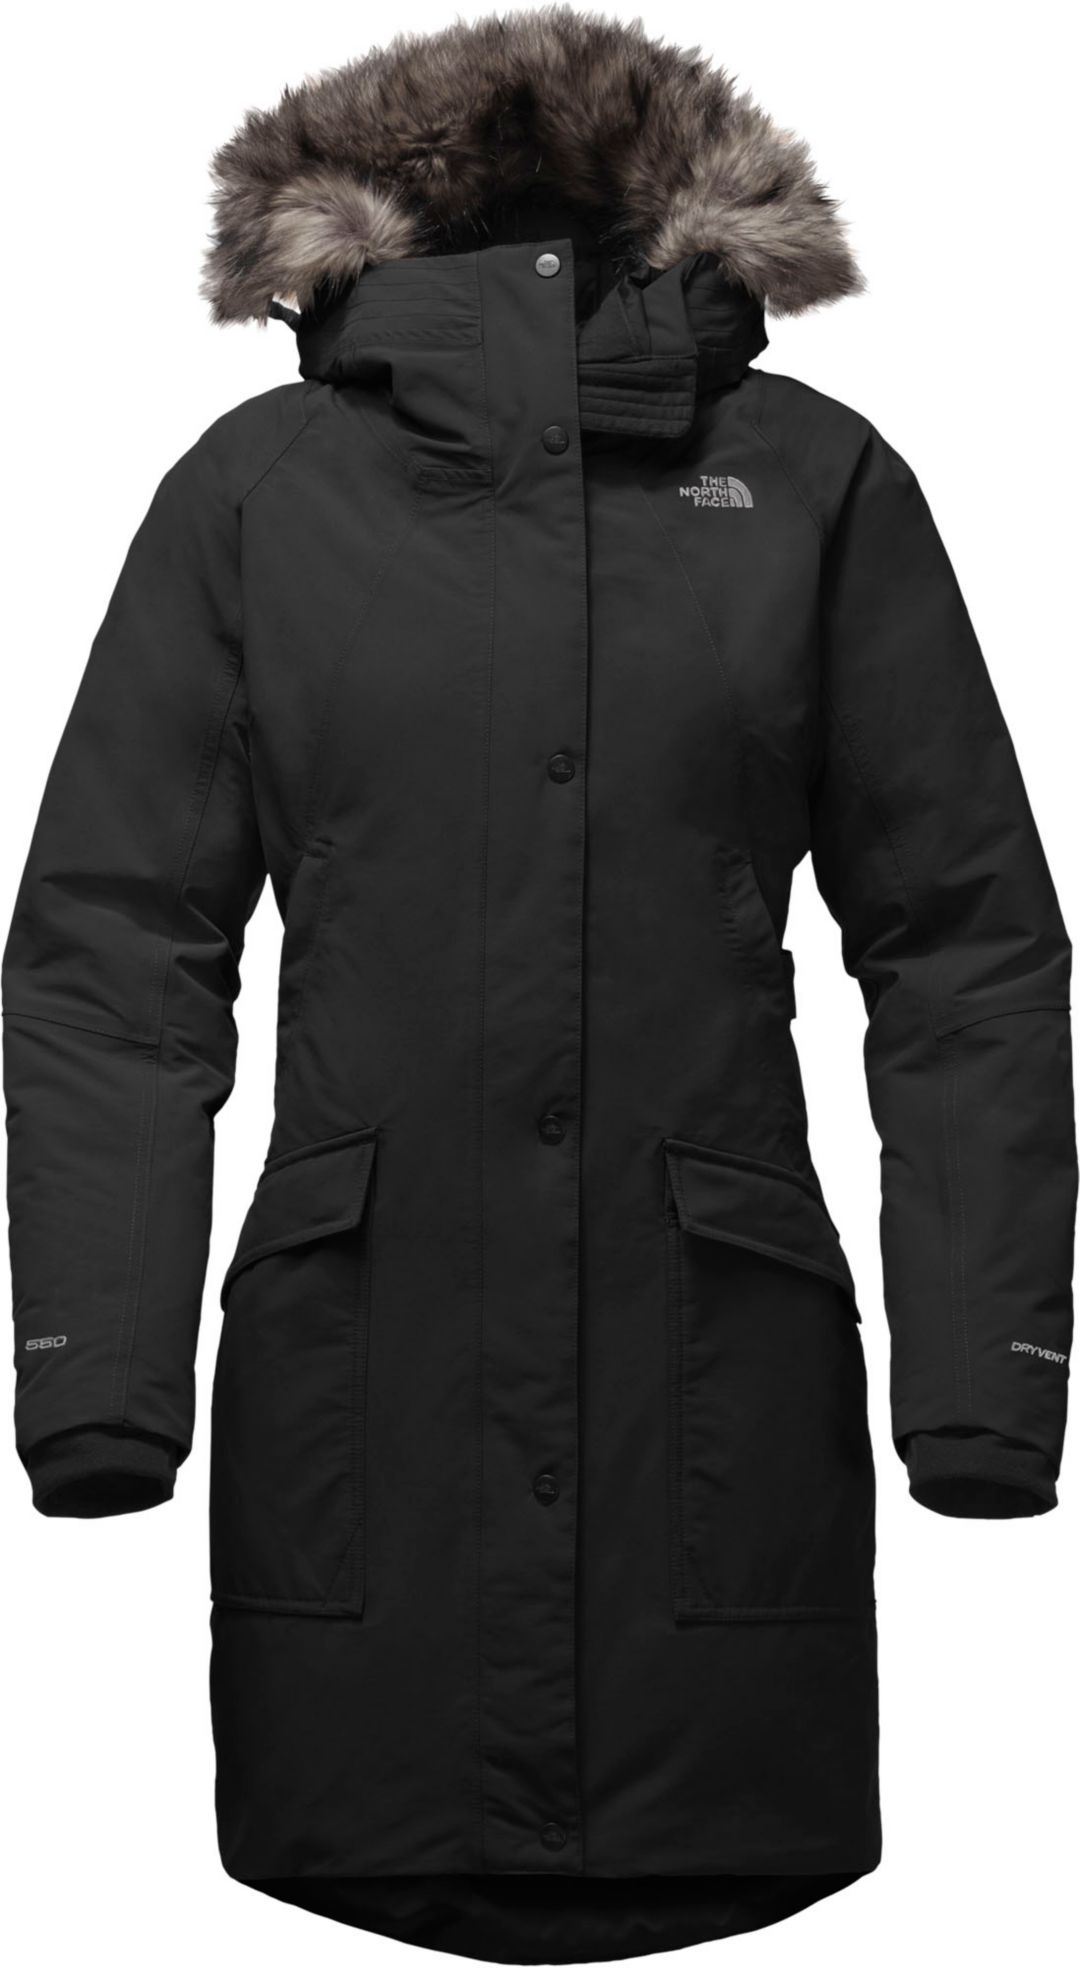 free shipping hot new products first look The North Face Women's Outer Boroughs Parka